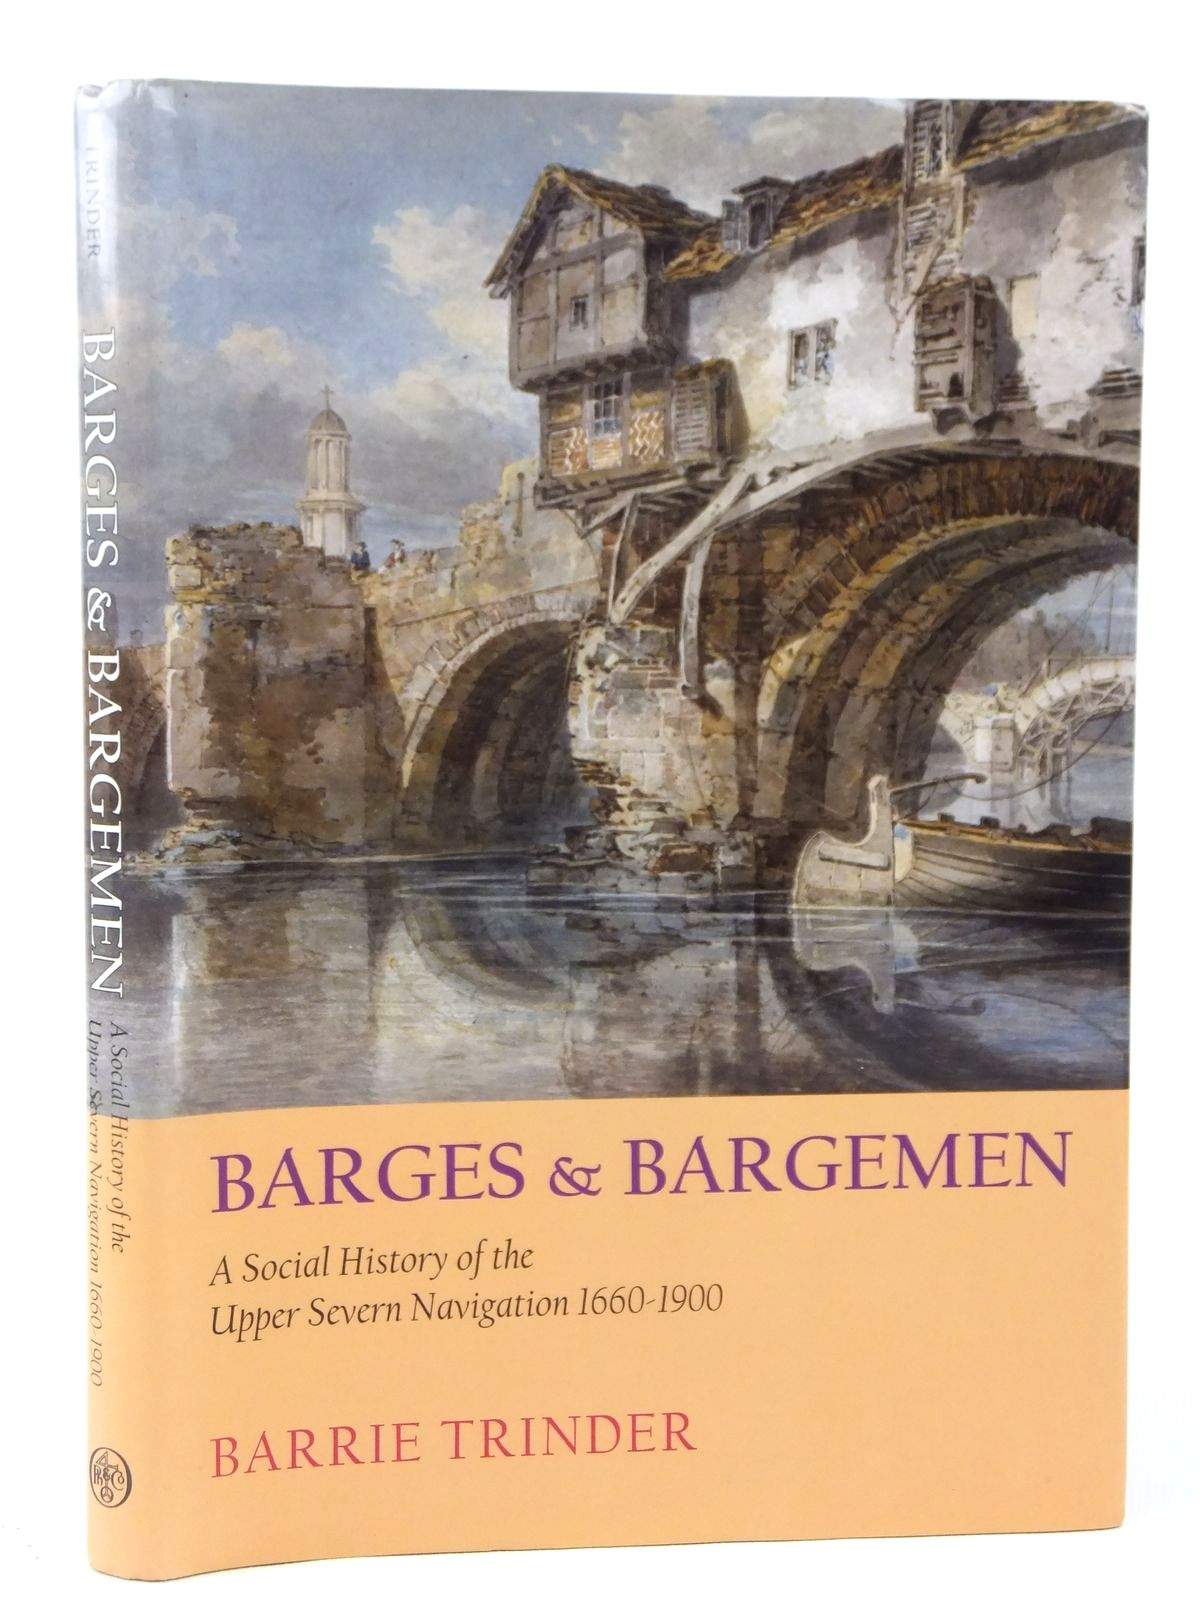 Photo of BARGES AND BARGEMEN A SOCIAL HISTORY OF THE UPPER SEVERN NAVIGATION 1660-1900 written by Trinder, Barrie published by Phillimore (STOCK CODE: 1608663)  for sale by Stella & Rose's Books